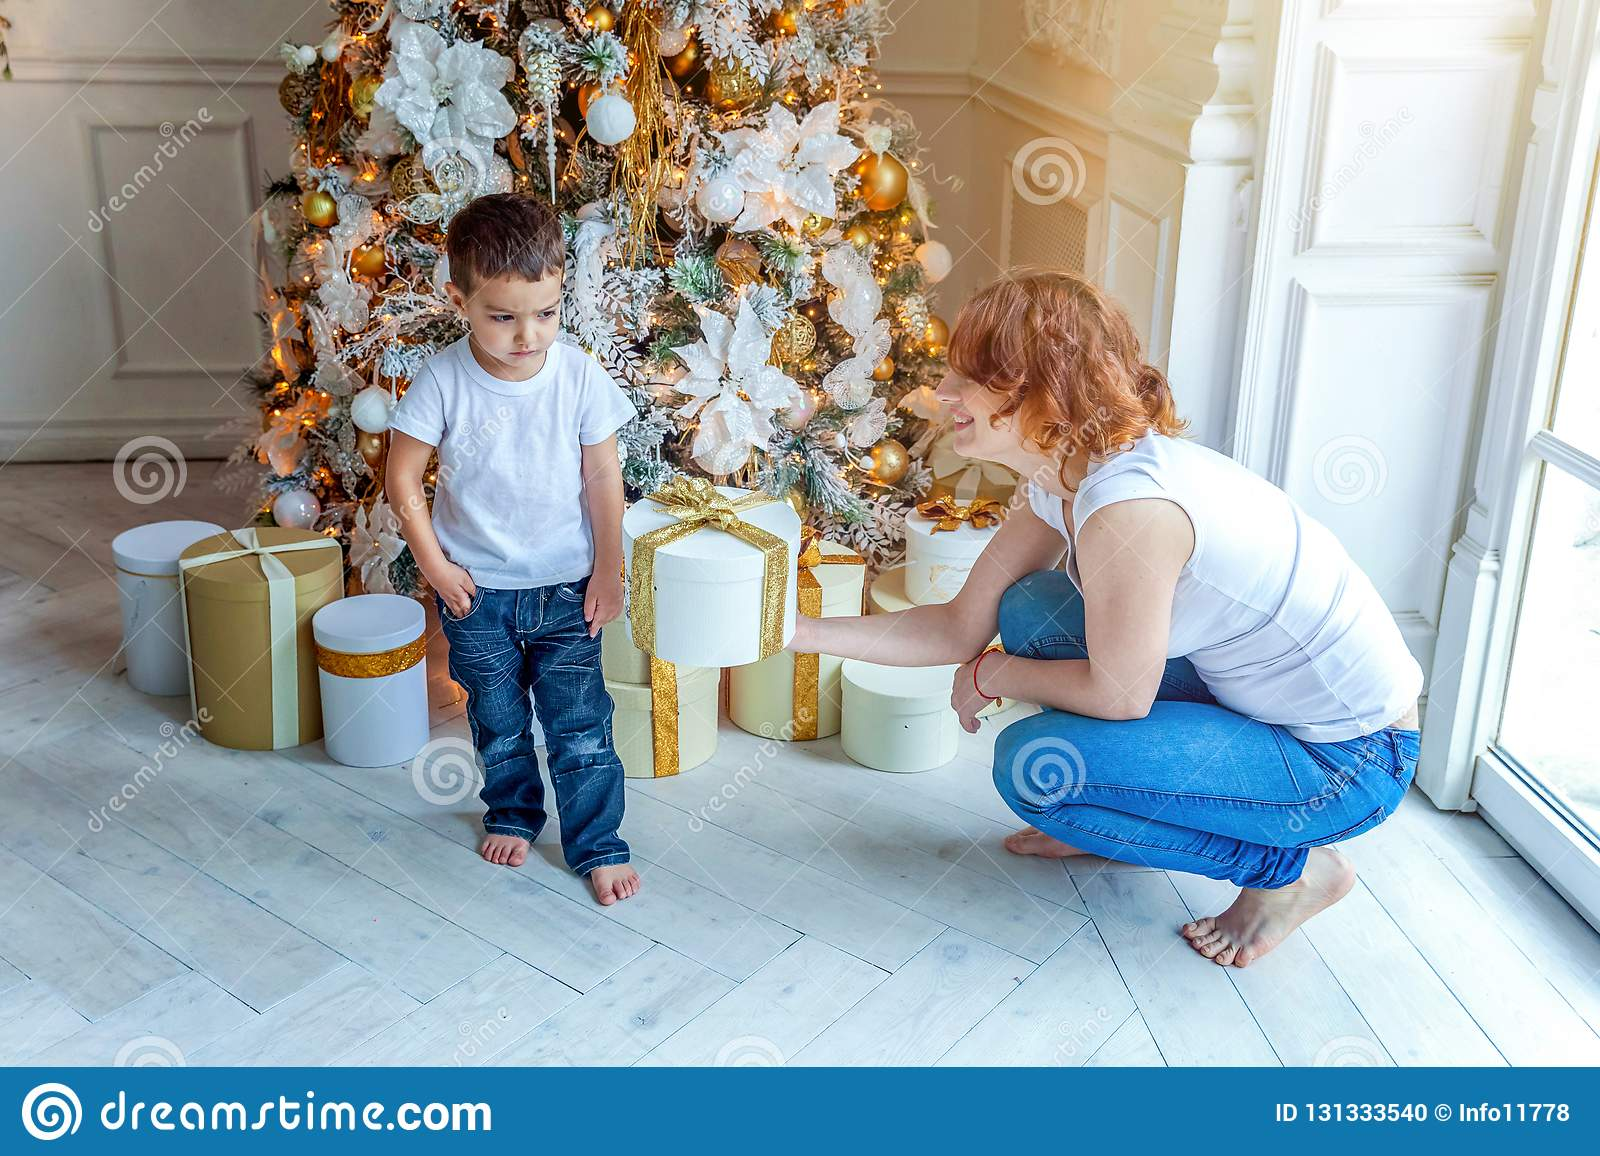 Mother and son near Christmas tree at home